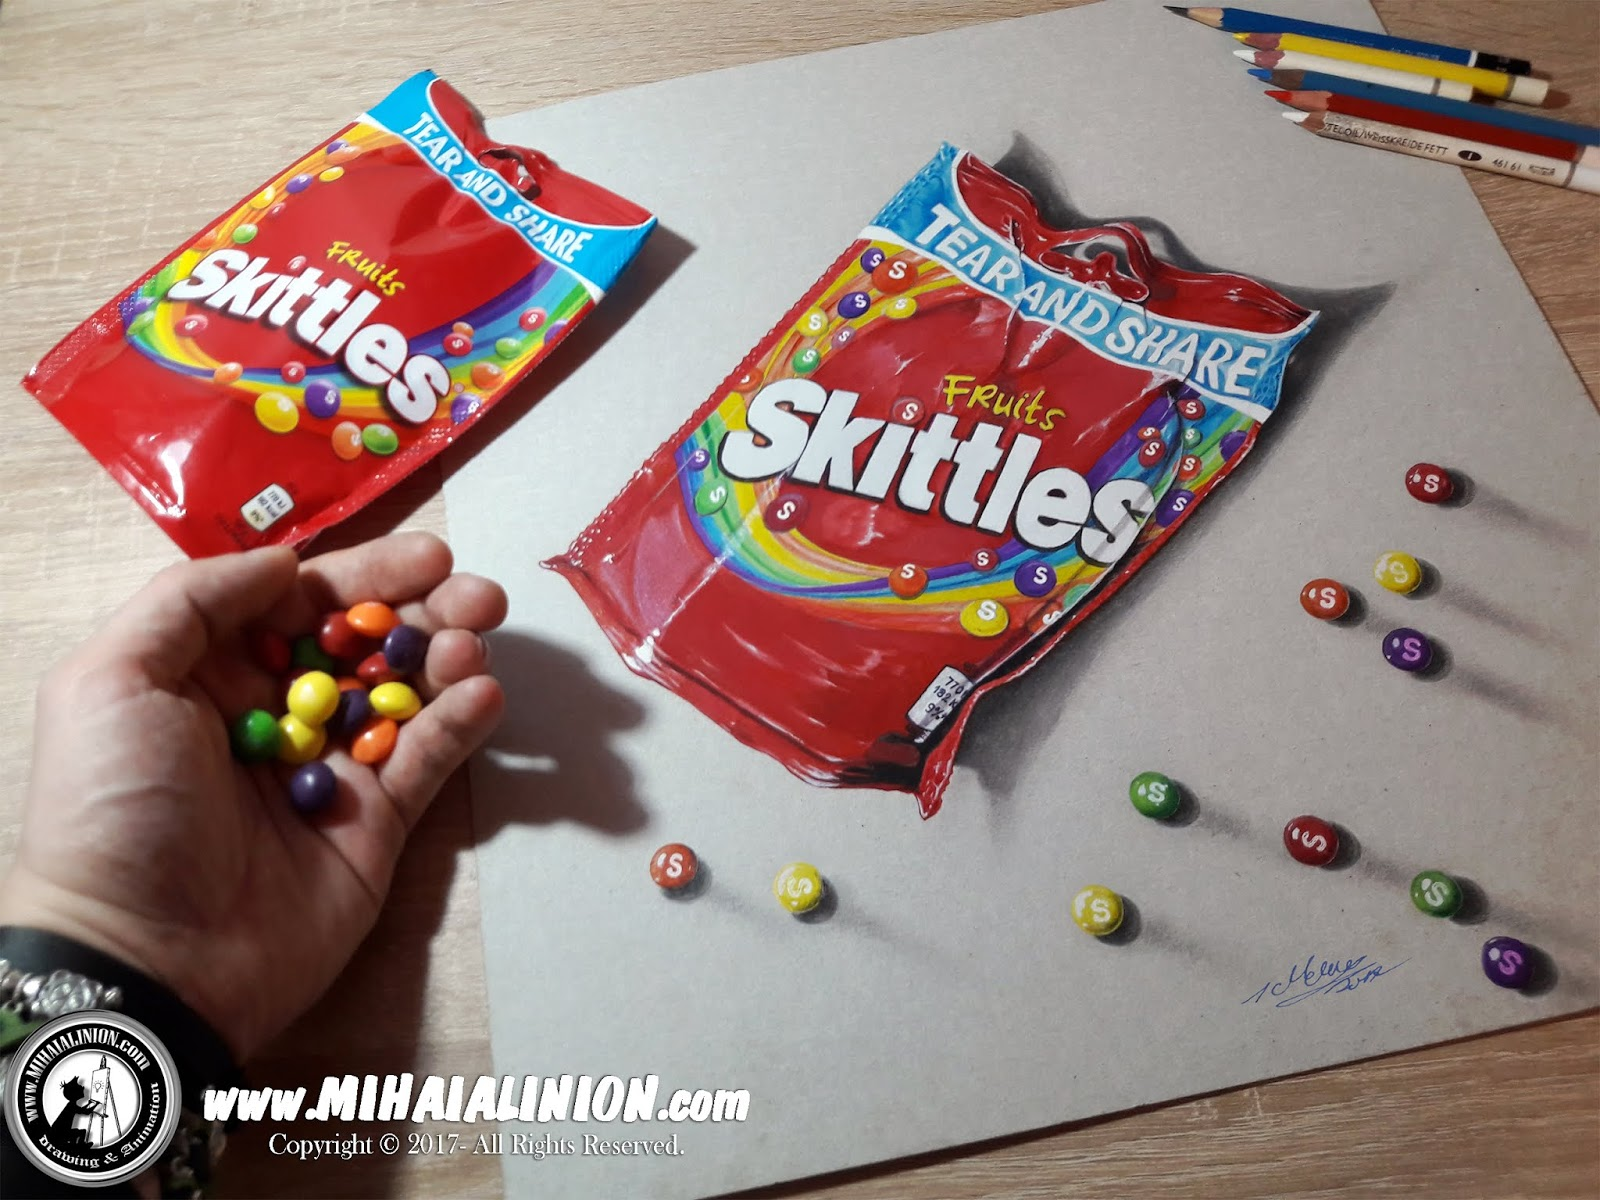 Drawing Skittles, Drawing Candies, Masius Benton & Bowles, Mars Ink, bonbons illustration, Taste the Rainbow, Wrigley, painting skittles, Skkittles commercial, How to draw skittles, skittles pack pencil drawing, illustrations by mihai alin ion, MAI Comics, Mihai Alin Ion, art by mihai alin ion, how to draw, artselfie, drawing ideas, free drawing lessons, drawing tutorial, art, dessin, disegno, dibujo, drawing for kids, drawing, illustration, painting, design, realistic 3d art, coloured pencils, www.mihaialinion.com, 2018, pencil drawing, tempera, acrilics paint, marker, gouache painting, mixed media, comics, comic book, caricature, portrait, cum sa desenezi, caricaturi mihai alin ion, caricaturi si portrete  la comanda, eveniment caricaturi, caricaturi la nunta, caricaturi la botez, caricaturi la majorat, desene pe pereti, desene pentru copii, ilustratie carte, benzi desenate, caricaturi, portrete, comanda caricaturi